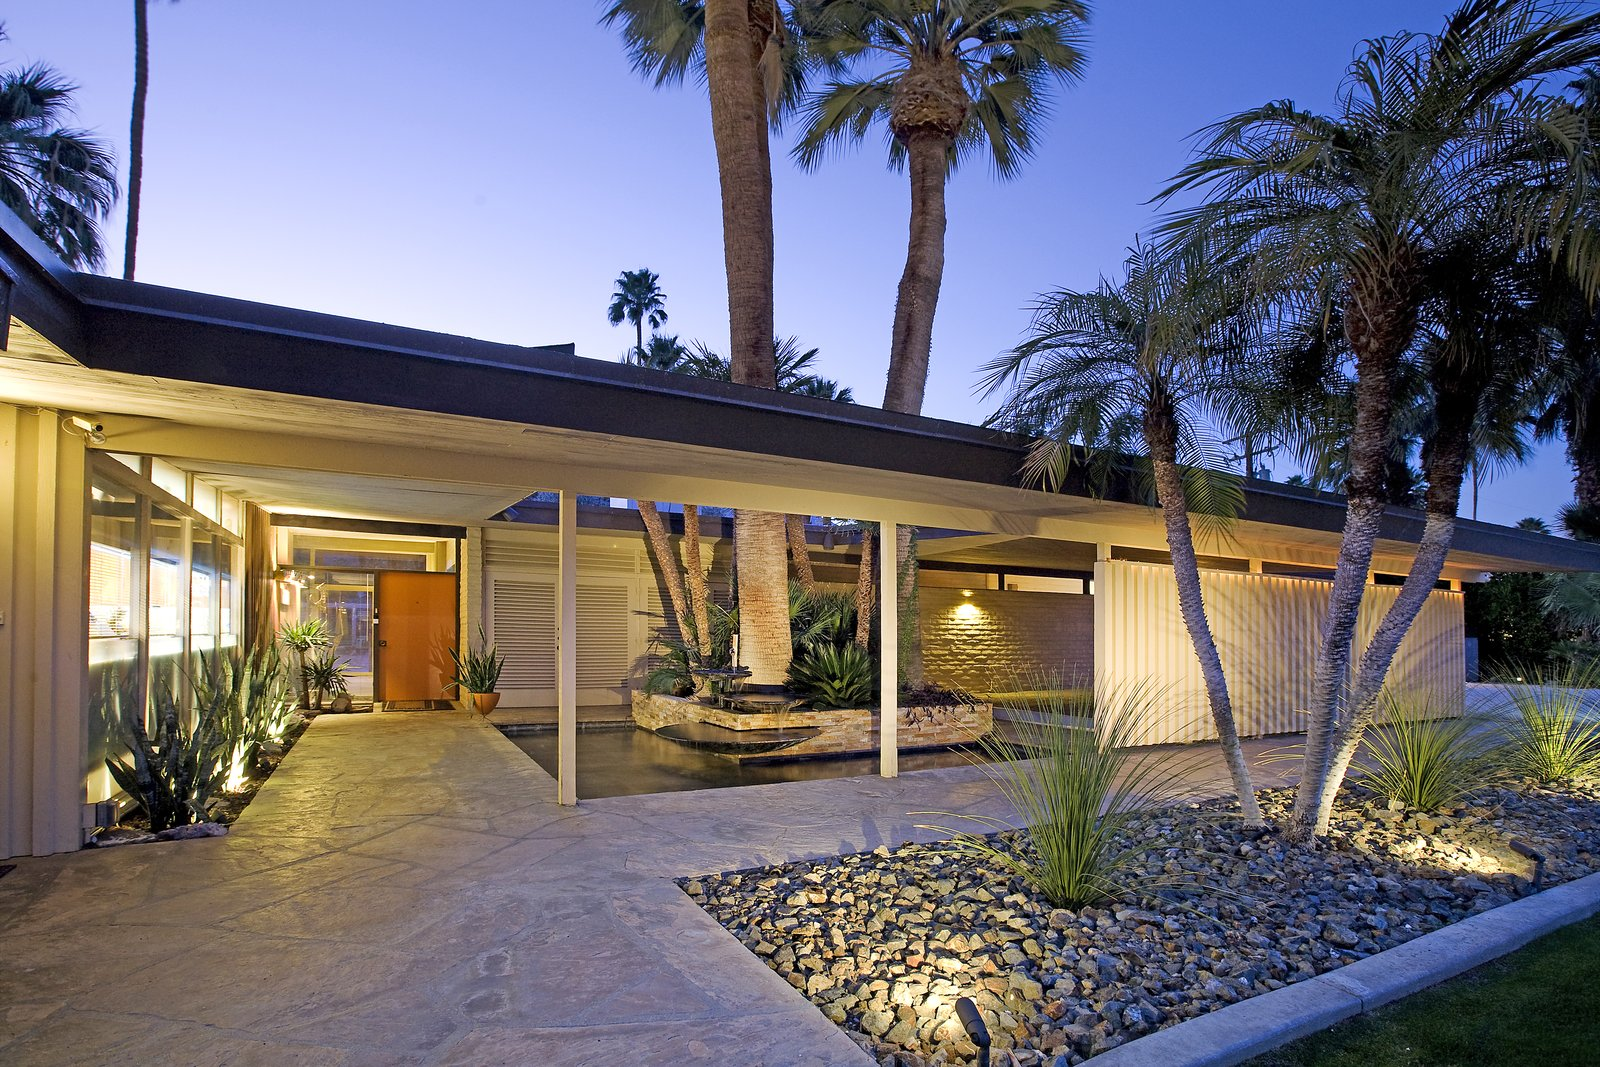 Outdoor, Walkways, Shrubs, Trees, Garden, Side Yard, Wood, Desert, Gardens, and Horizontal A fountain that spills into a palm sheltered pond at the entry.  Outdoor Garden Desert Side Yard Photos from A Luminous Palm Springs Midcentury Asks $3.35M